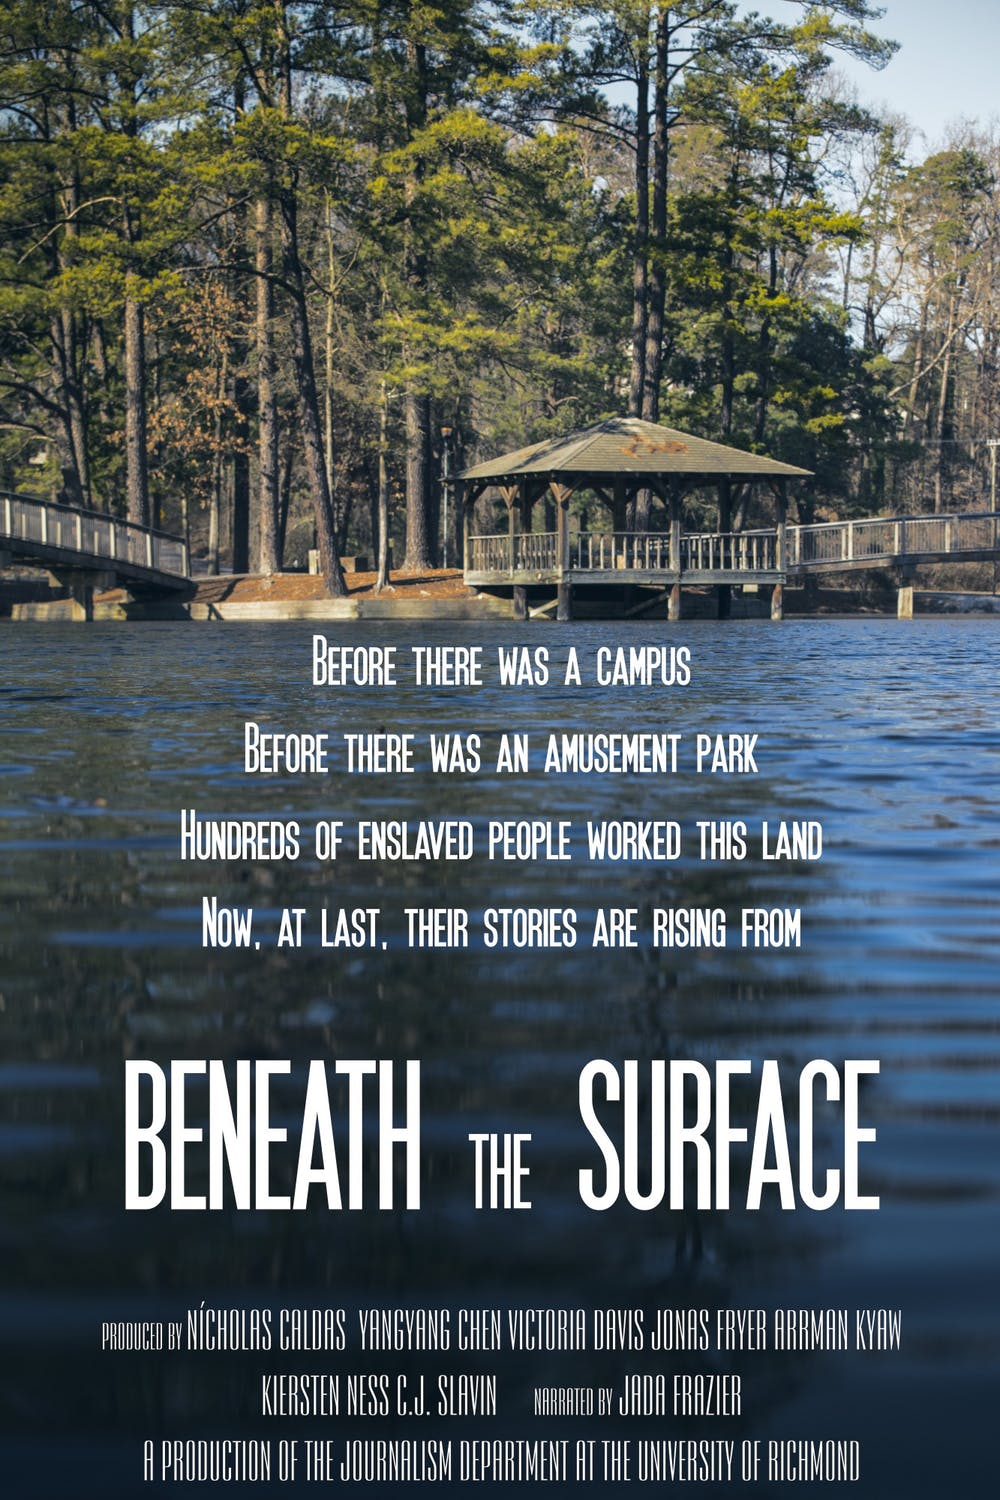 final-beneath-the-surface-poster